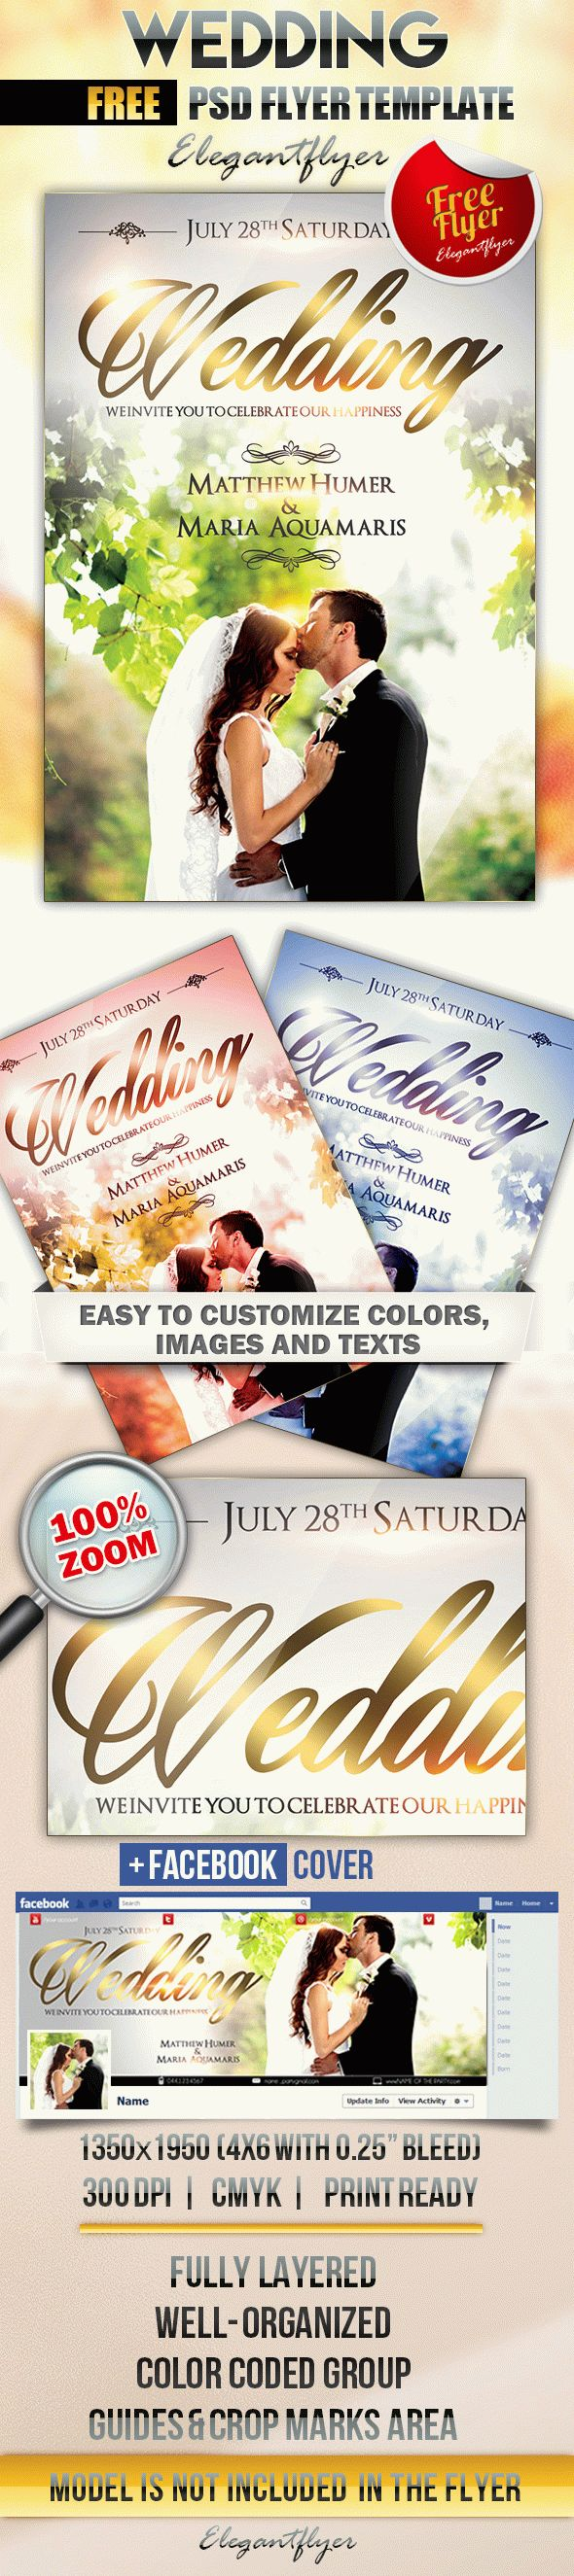 wedding 3  u2013 free flyer psd template  u2013 by elegantflyer